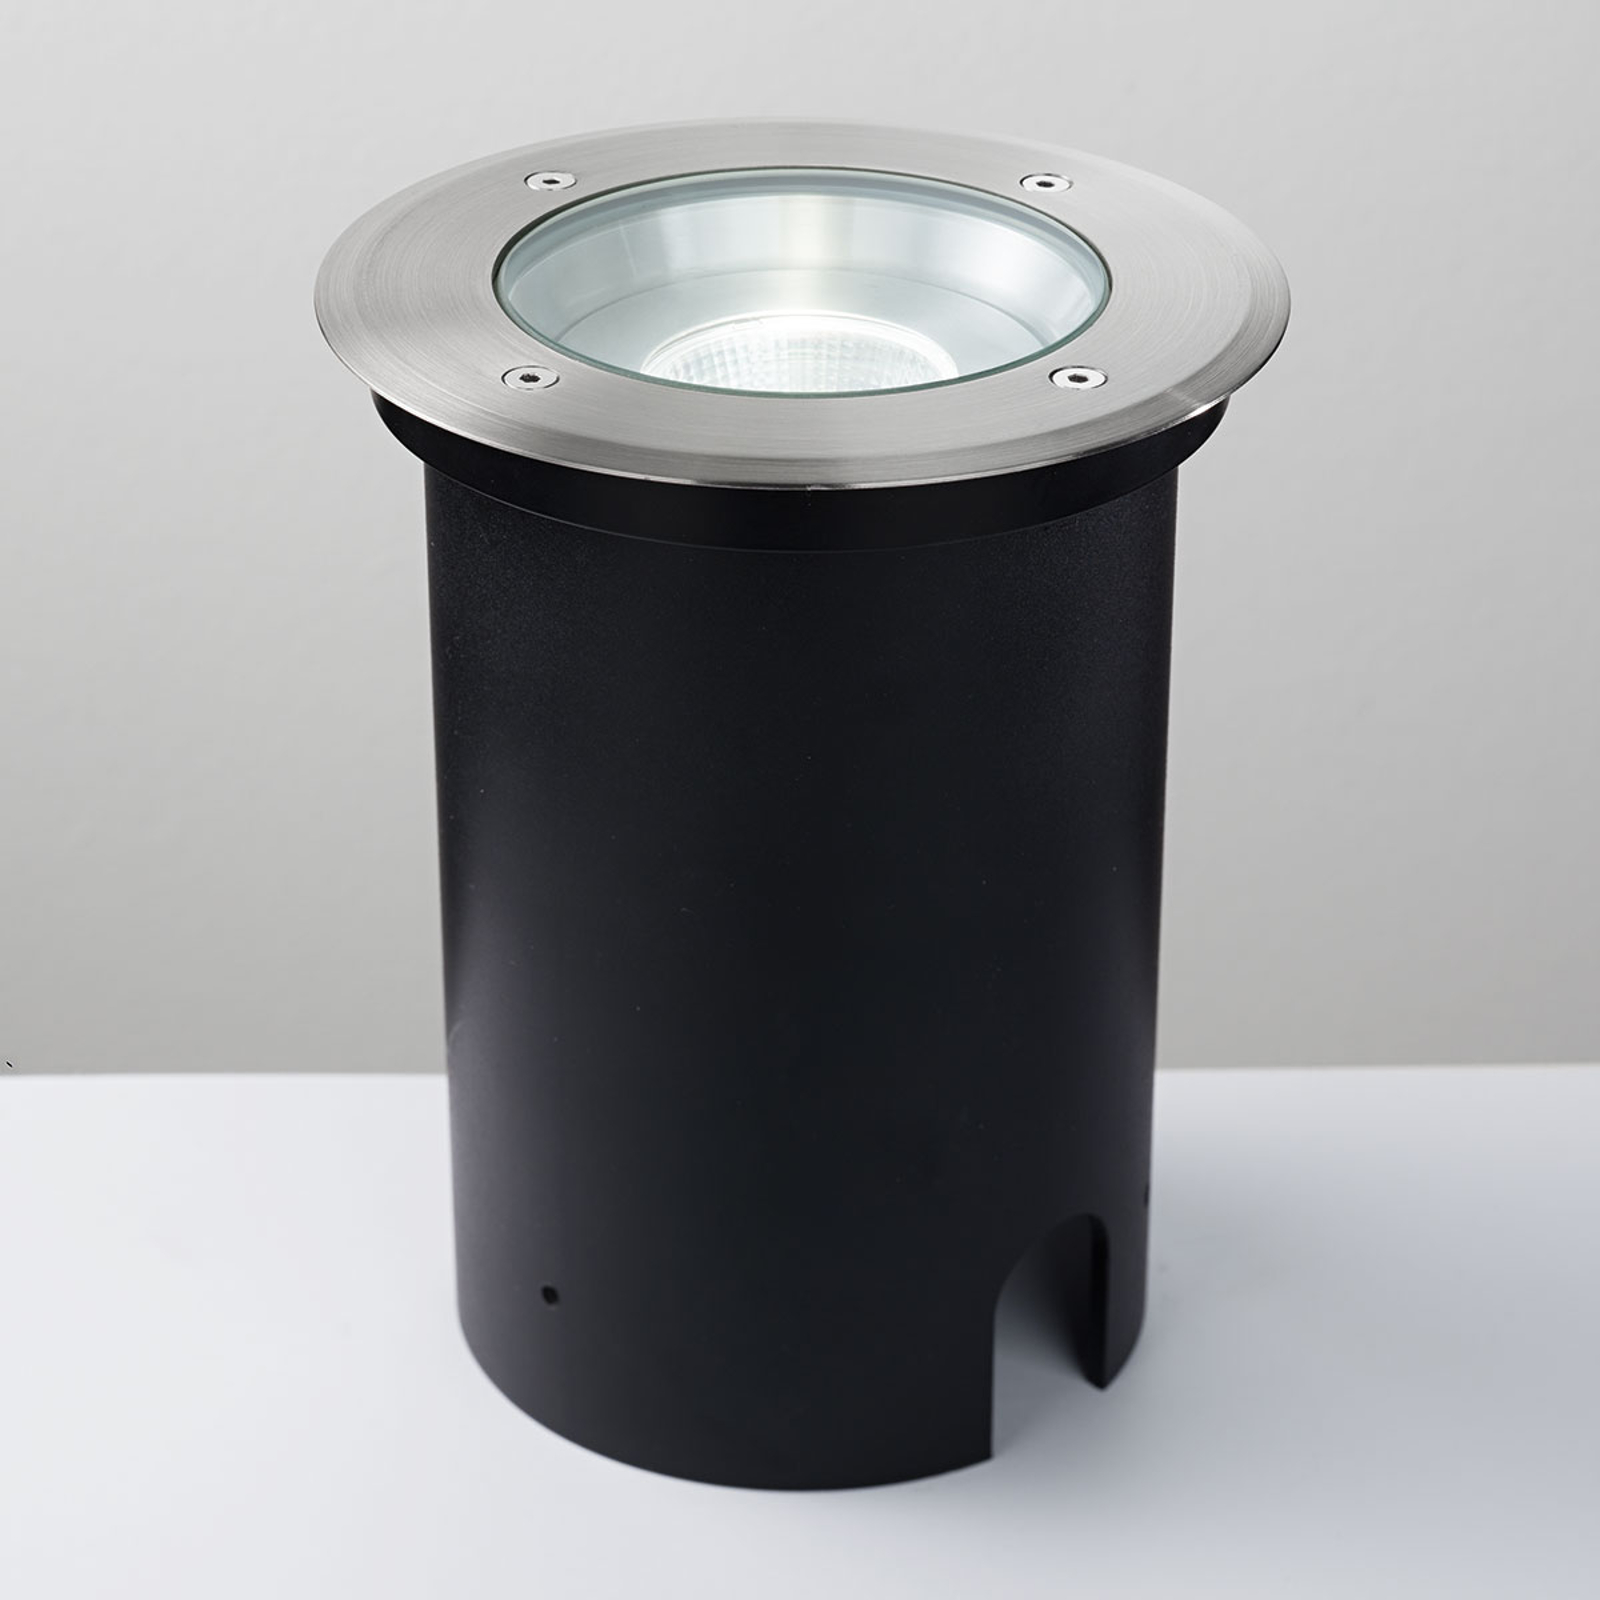 Scotty 6 LED-bakkespot IP67